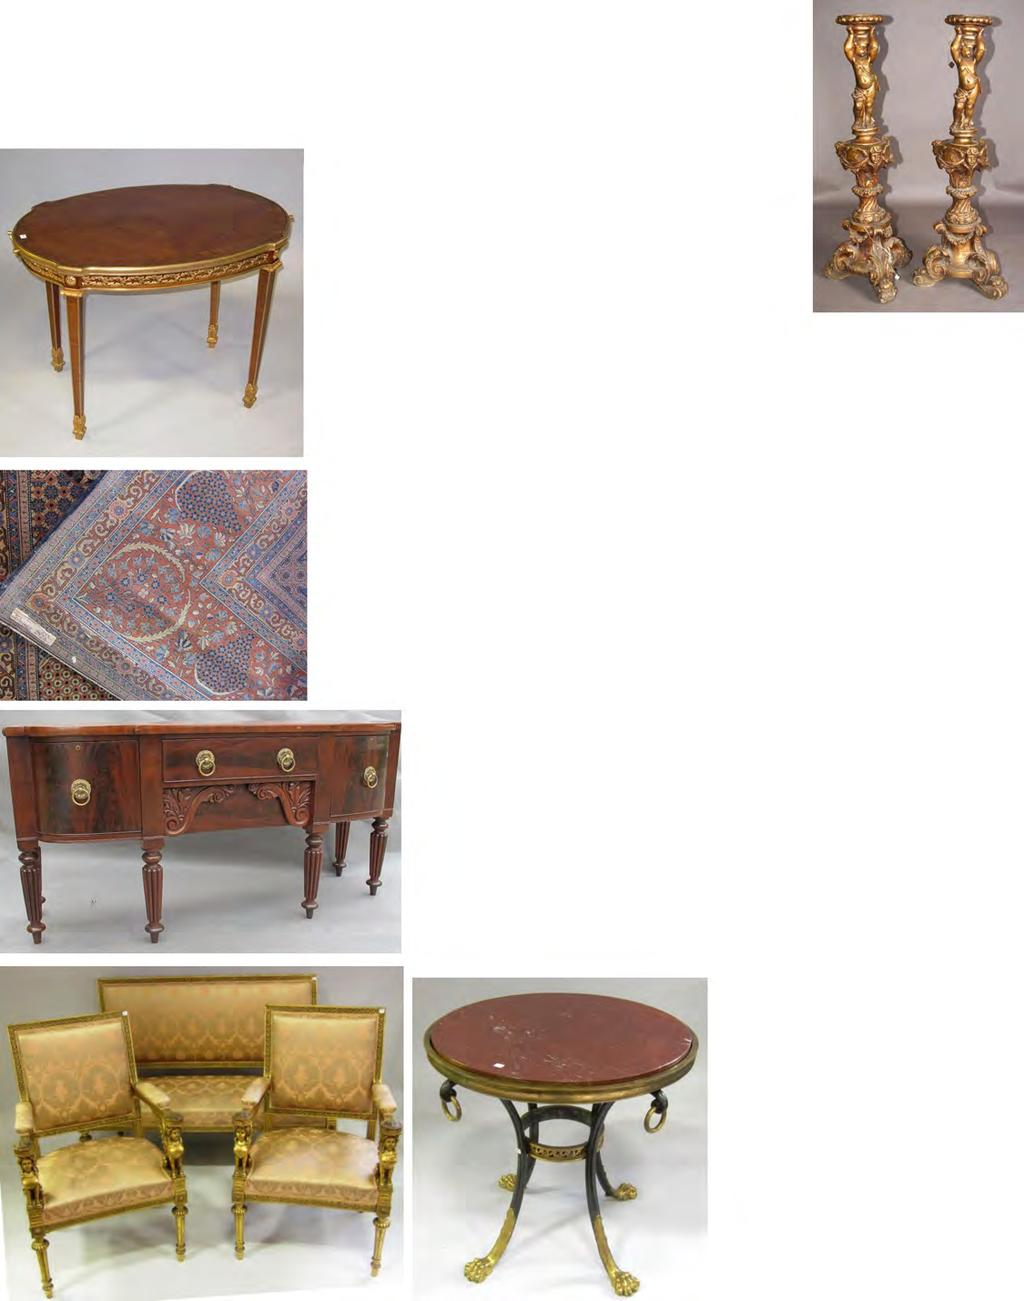 33 Peachtree & Bennett 232 ANTIQUE LOUIS XVI MARBLE TOP SIDE TABLE: with a pierced brass gallery, and mahogany cylindrical roll top. On brass capped tapering column legs. Very good condition.